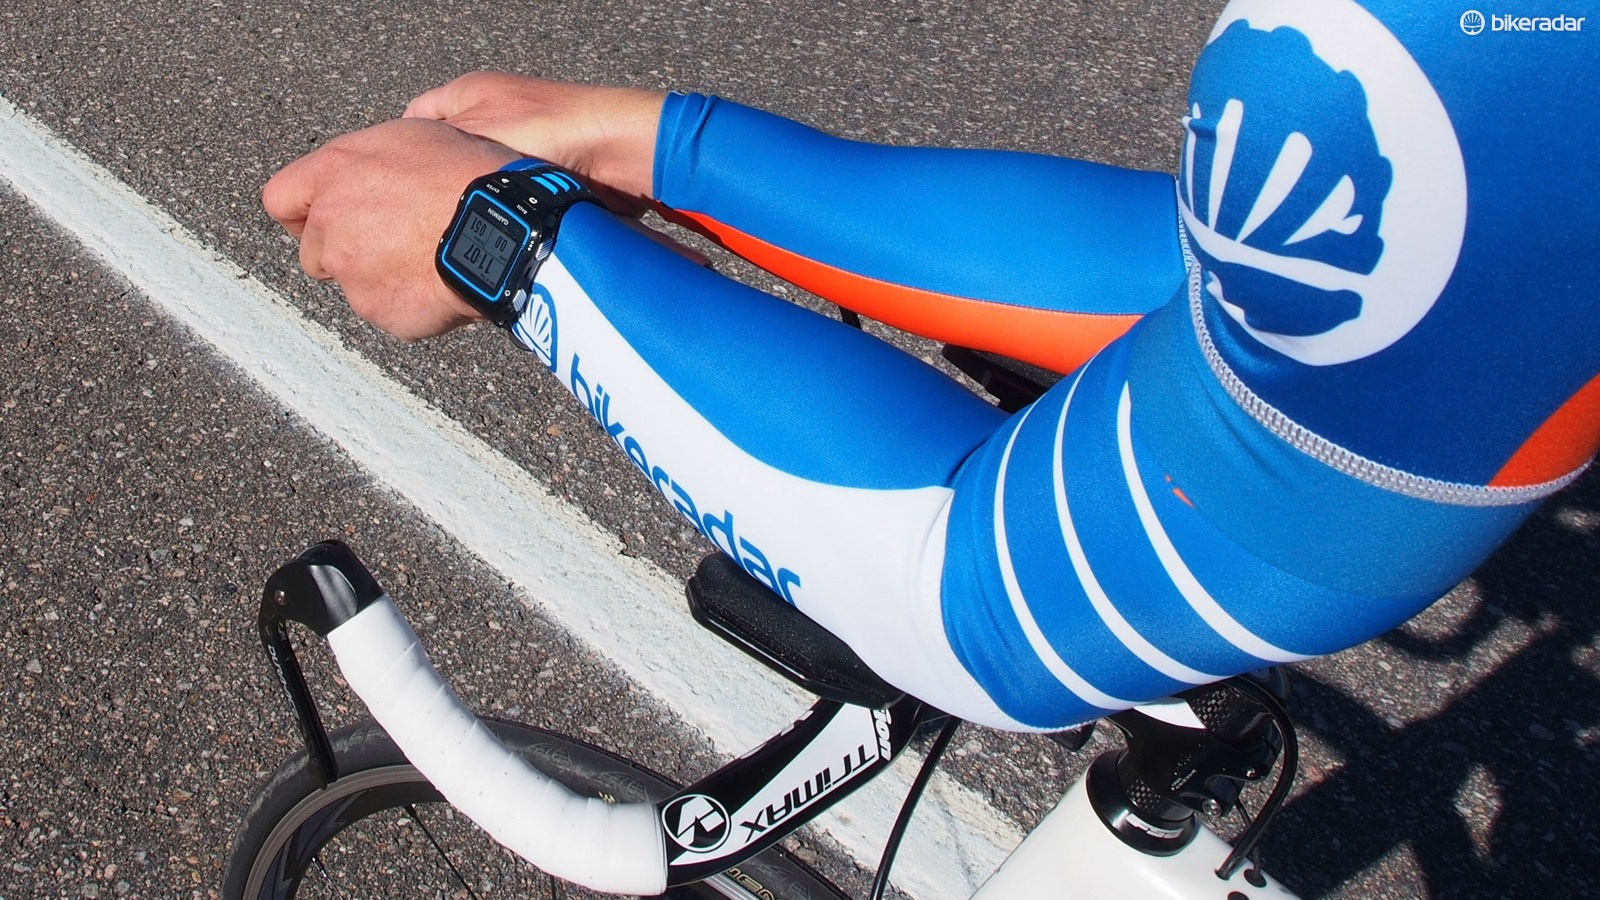 The Garmin 920XT captures and displays all the standard cycling metrics, including that from ANT+ peripherals such as power meters and heart rate monitors, but a watch just isn't as easy to view as a bike computer